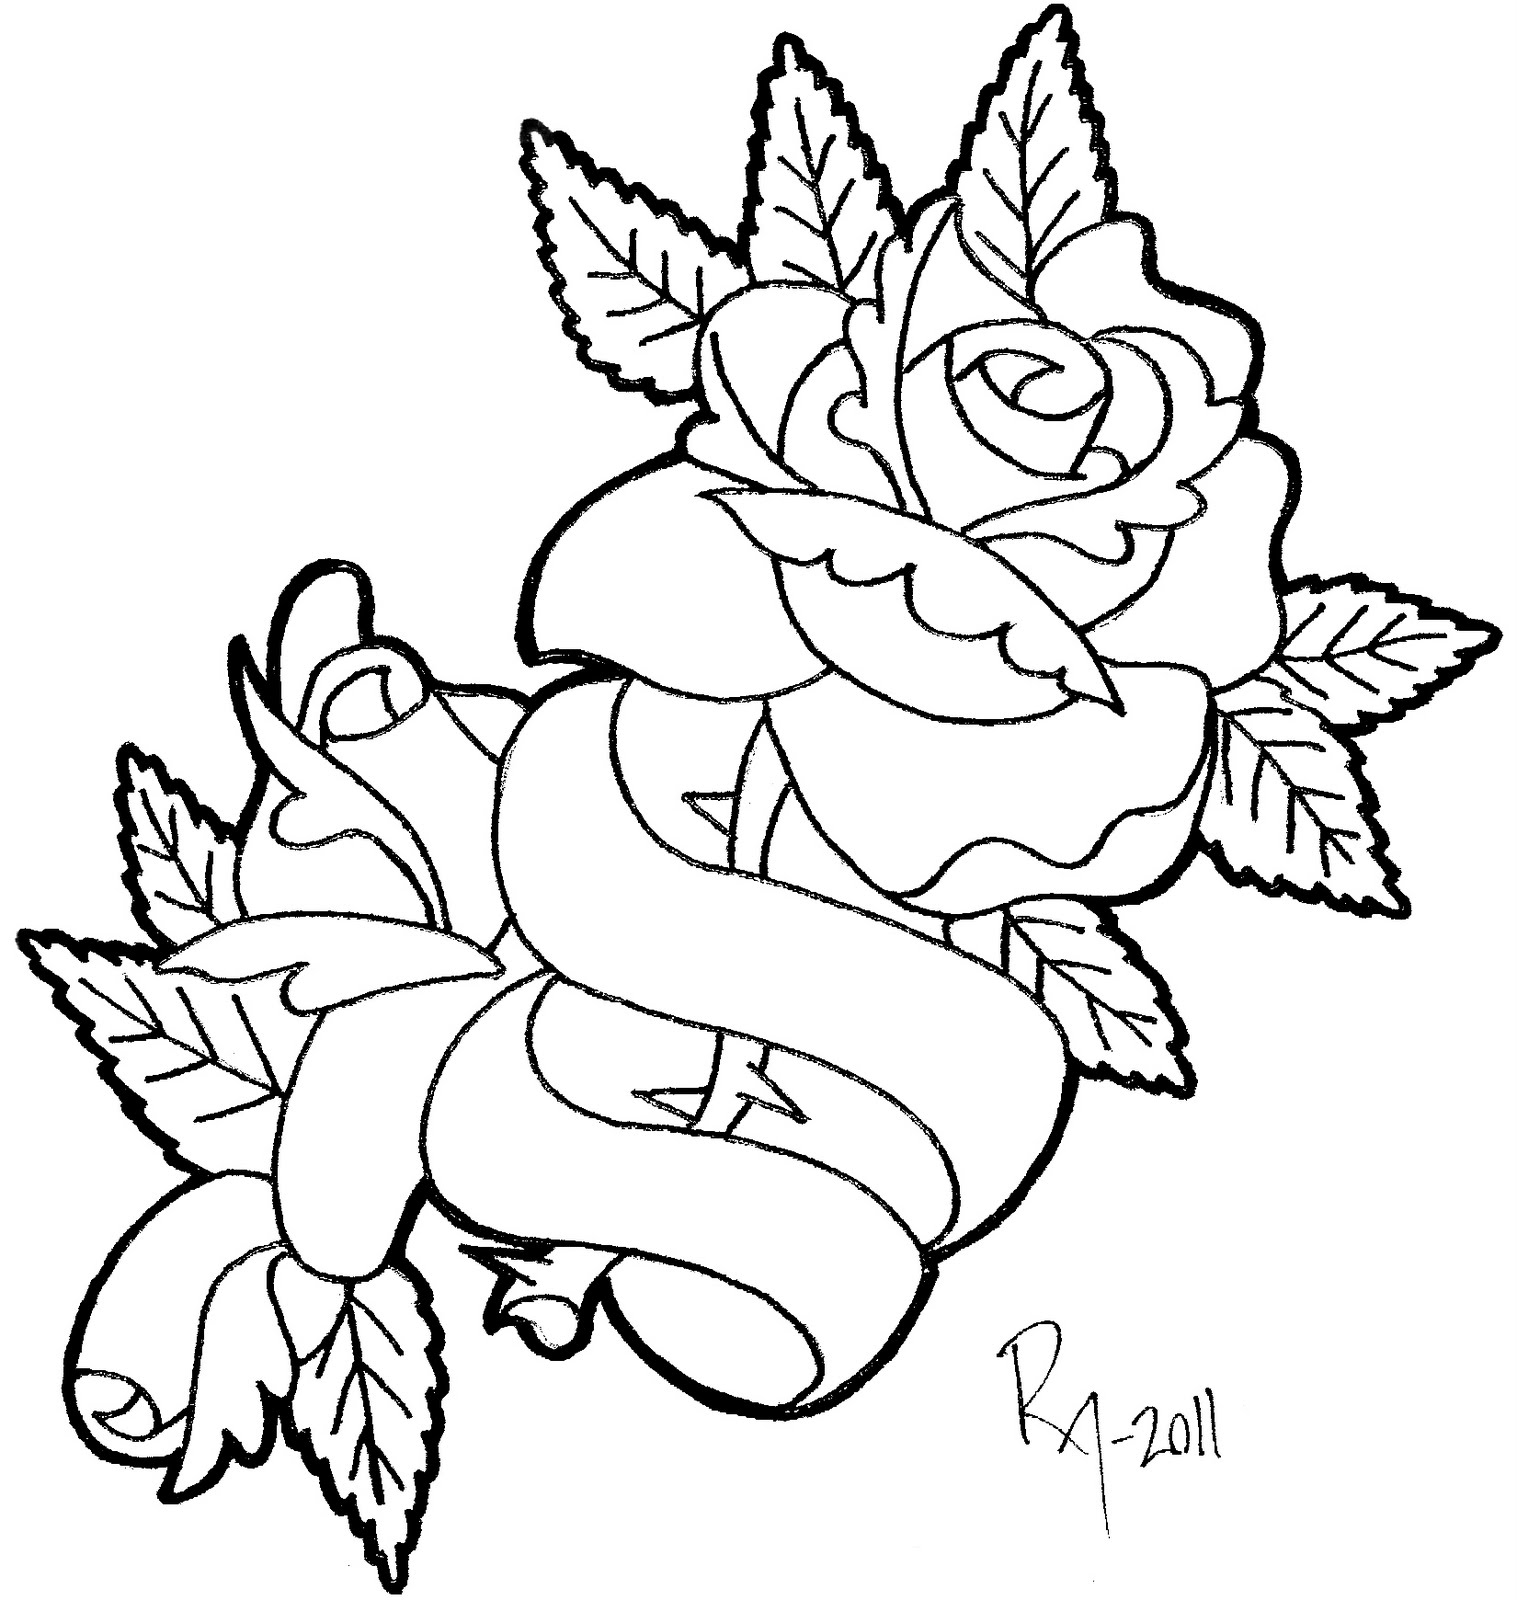 cross coloring pages with roses   Rodney's Blog: June 2011